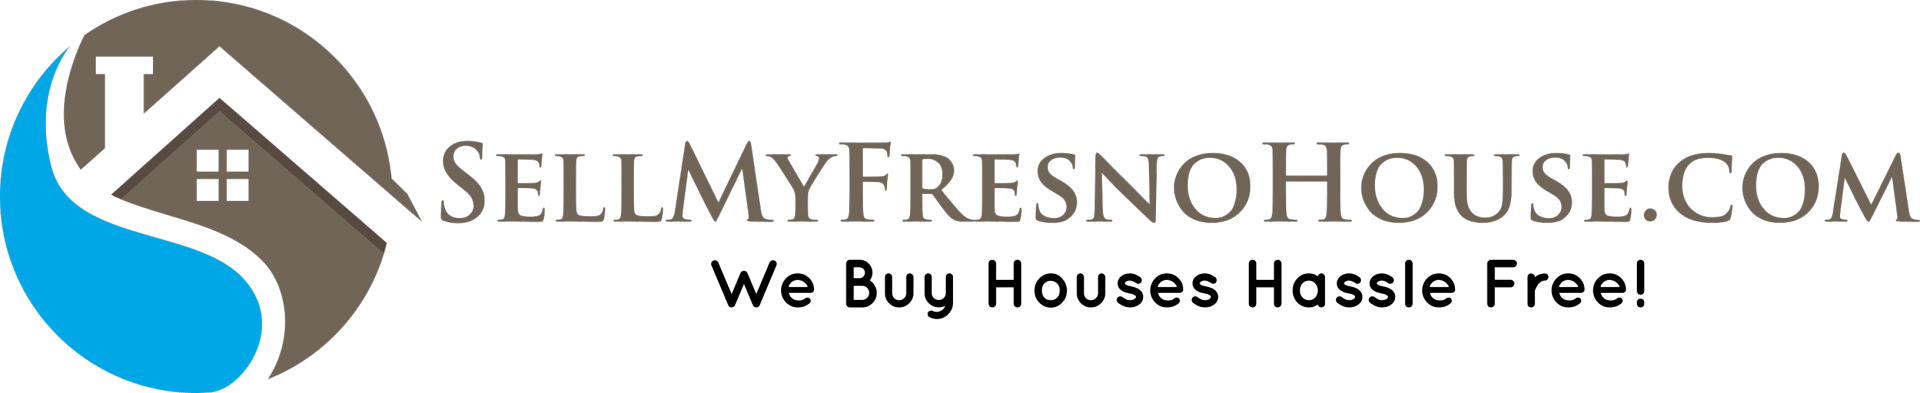 Sell My Fresno House logo